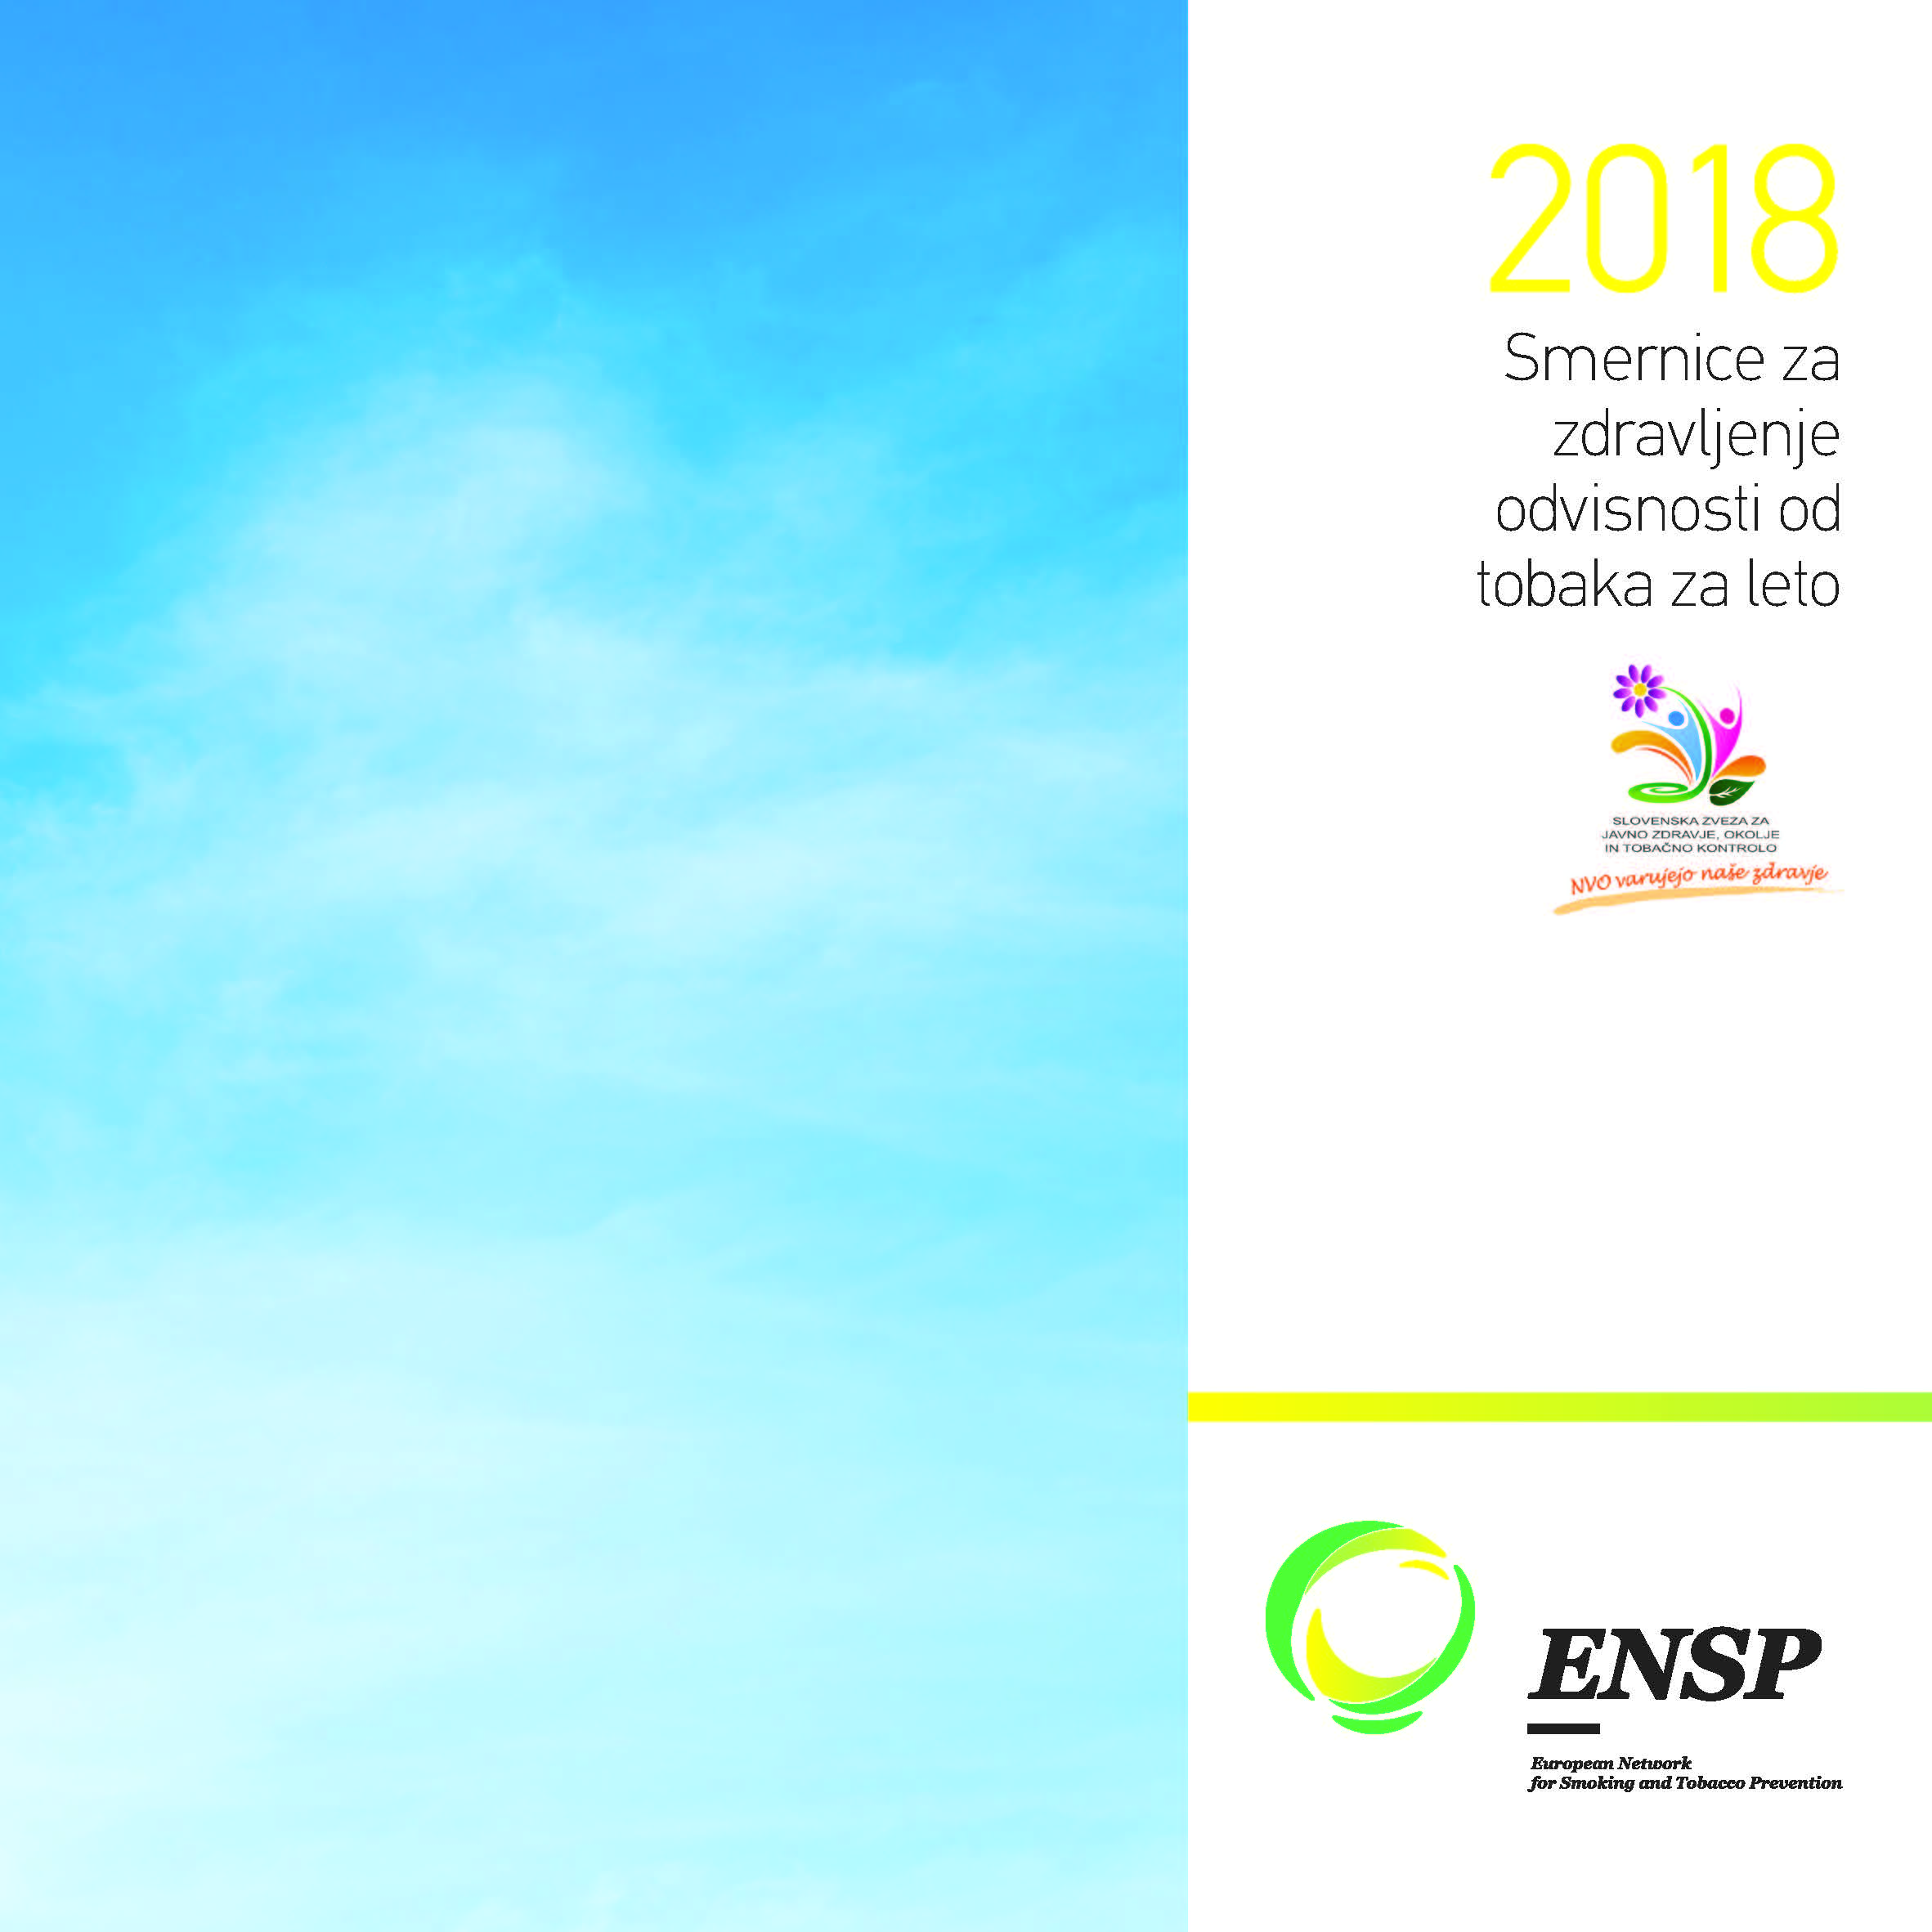 guidelines_2018_slovenia_Page_001.jpg